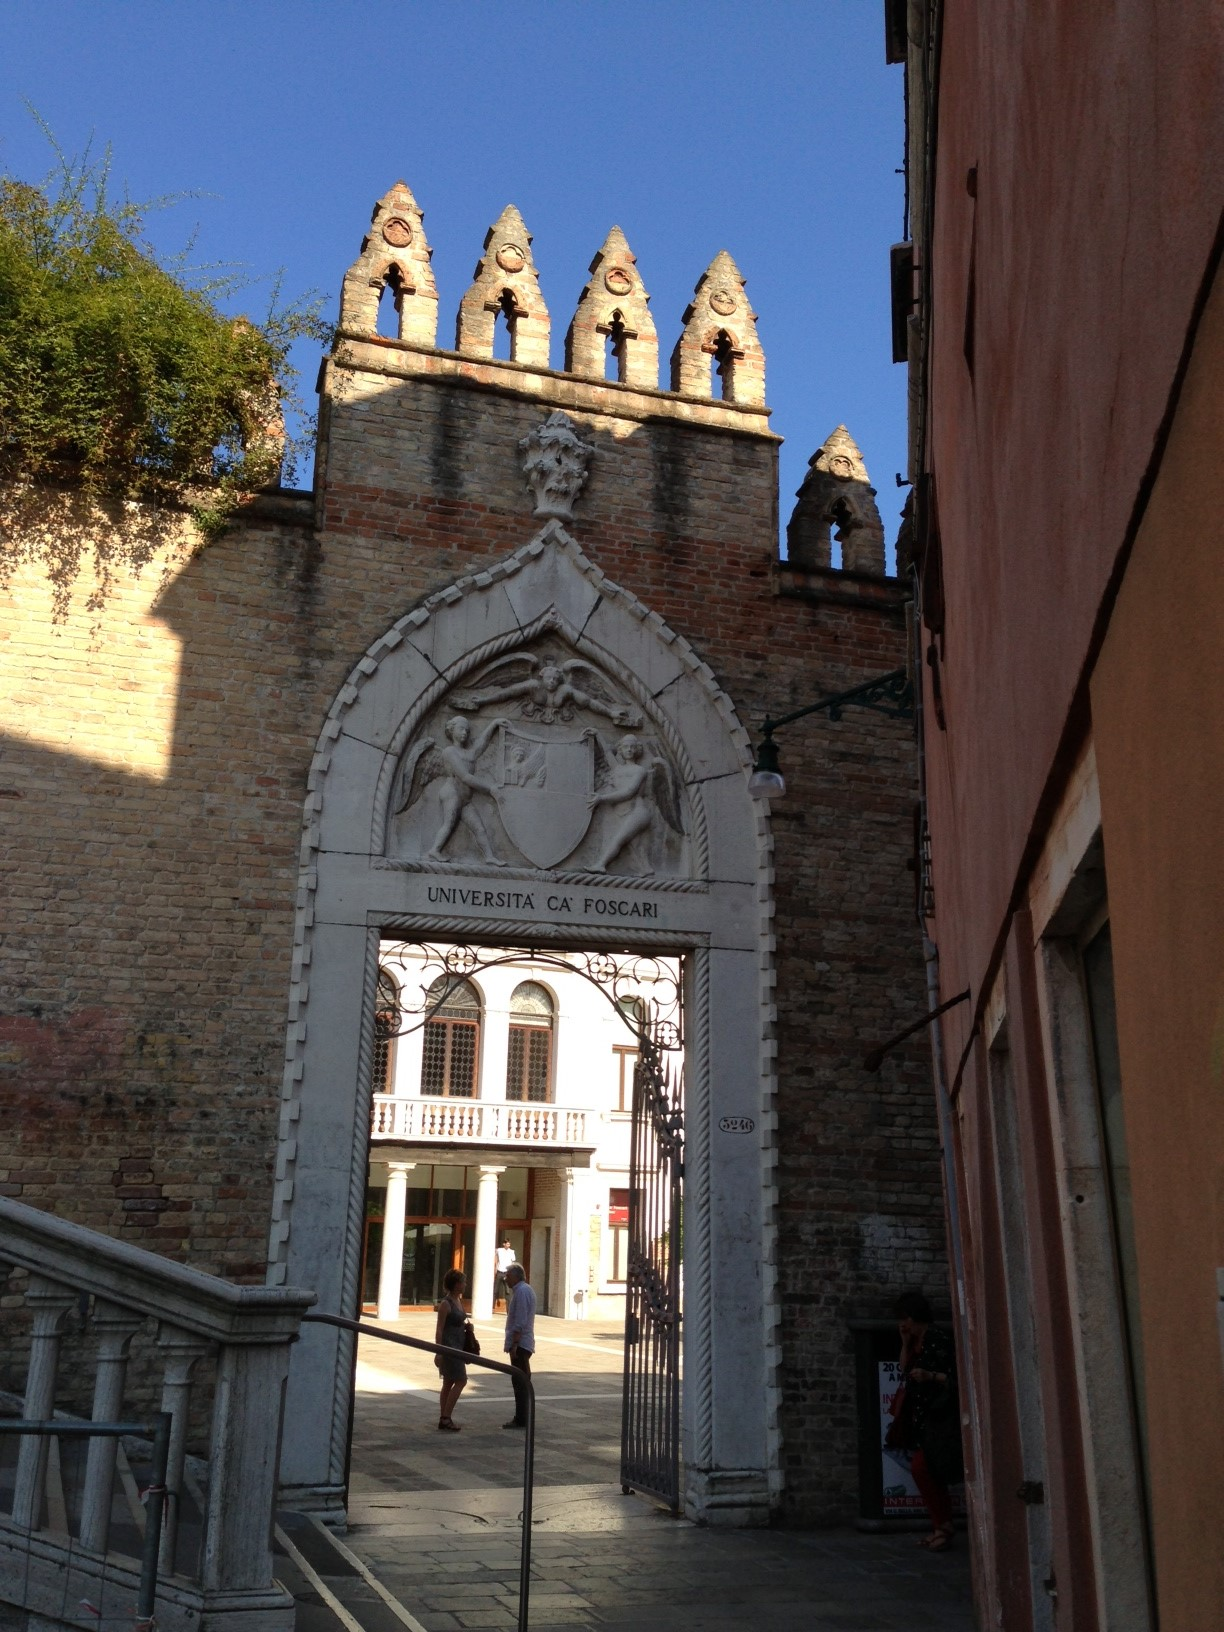 The Courtyard Entrance of Palazzo Ca' Foscari. Photo Credit: http://theglobalfool.com/